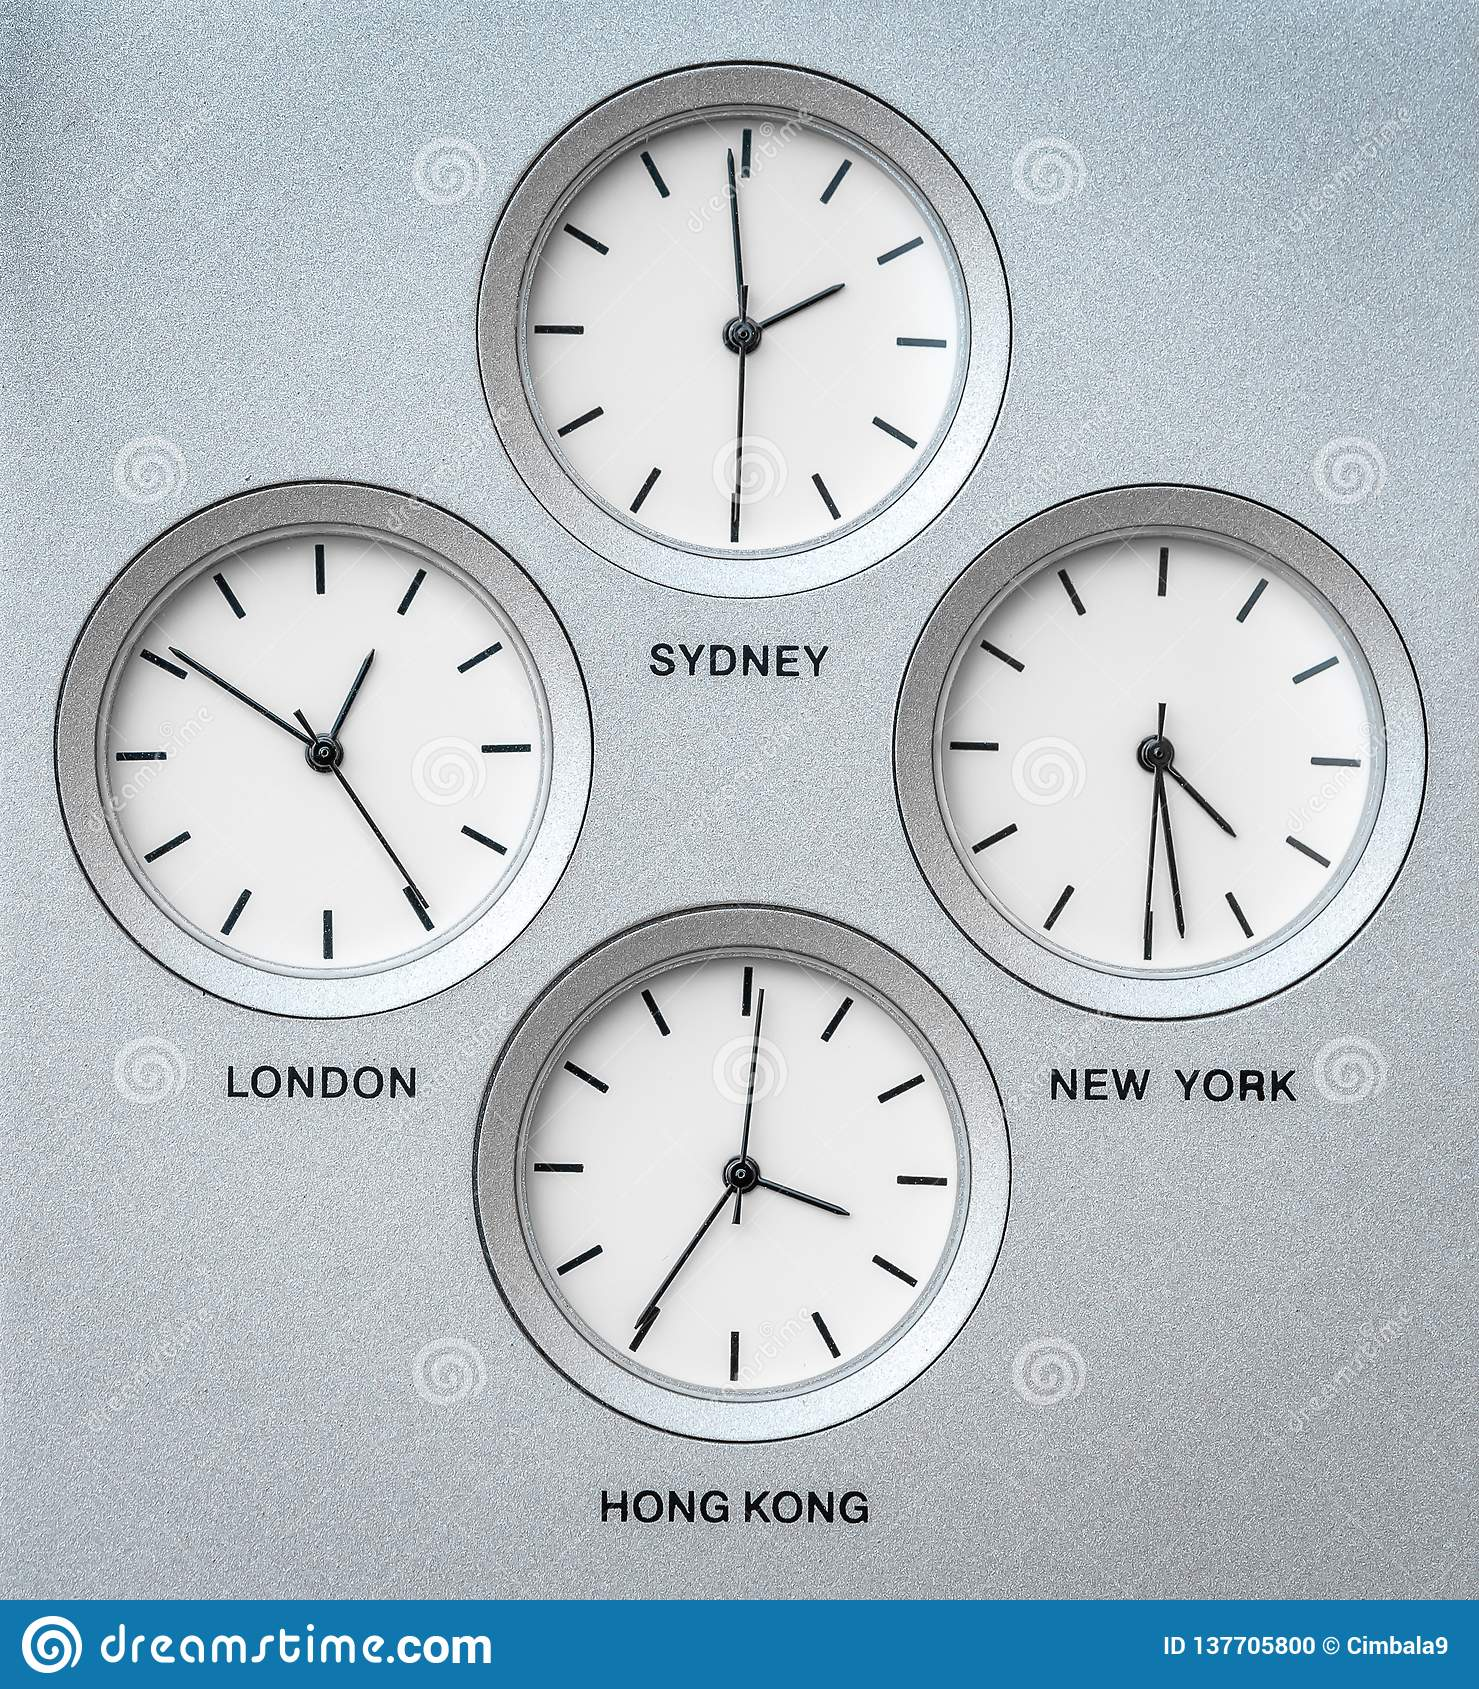 International Clocks With 4 Different Time Zones Stock